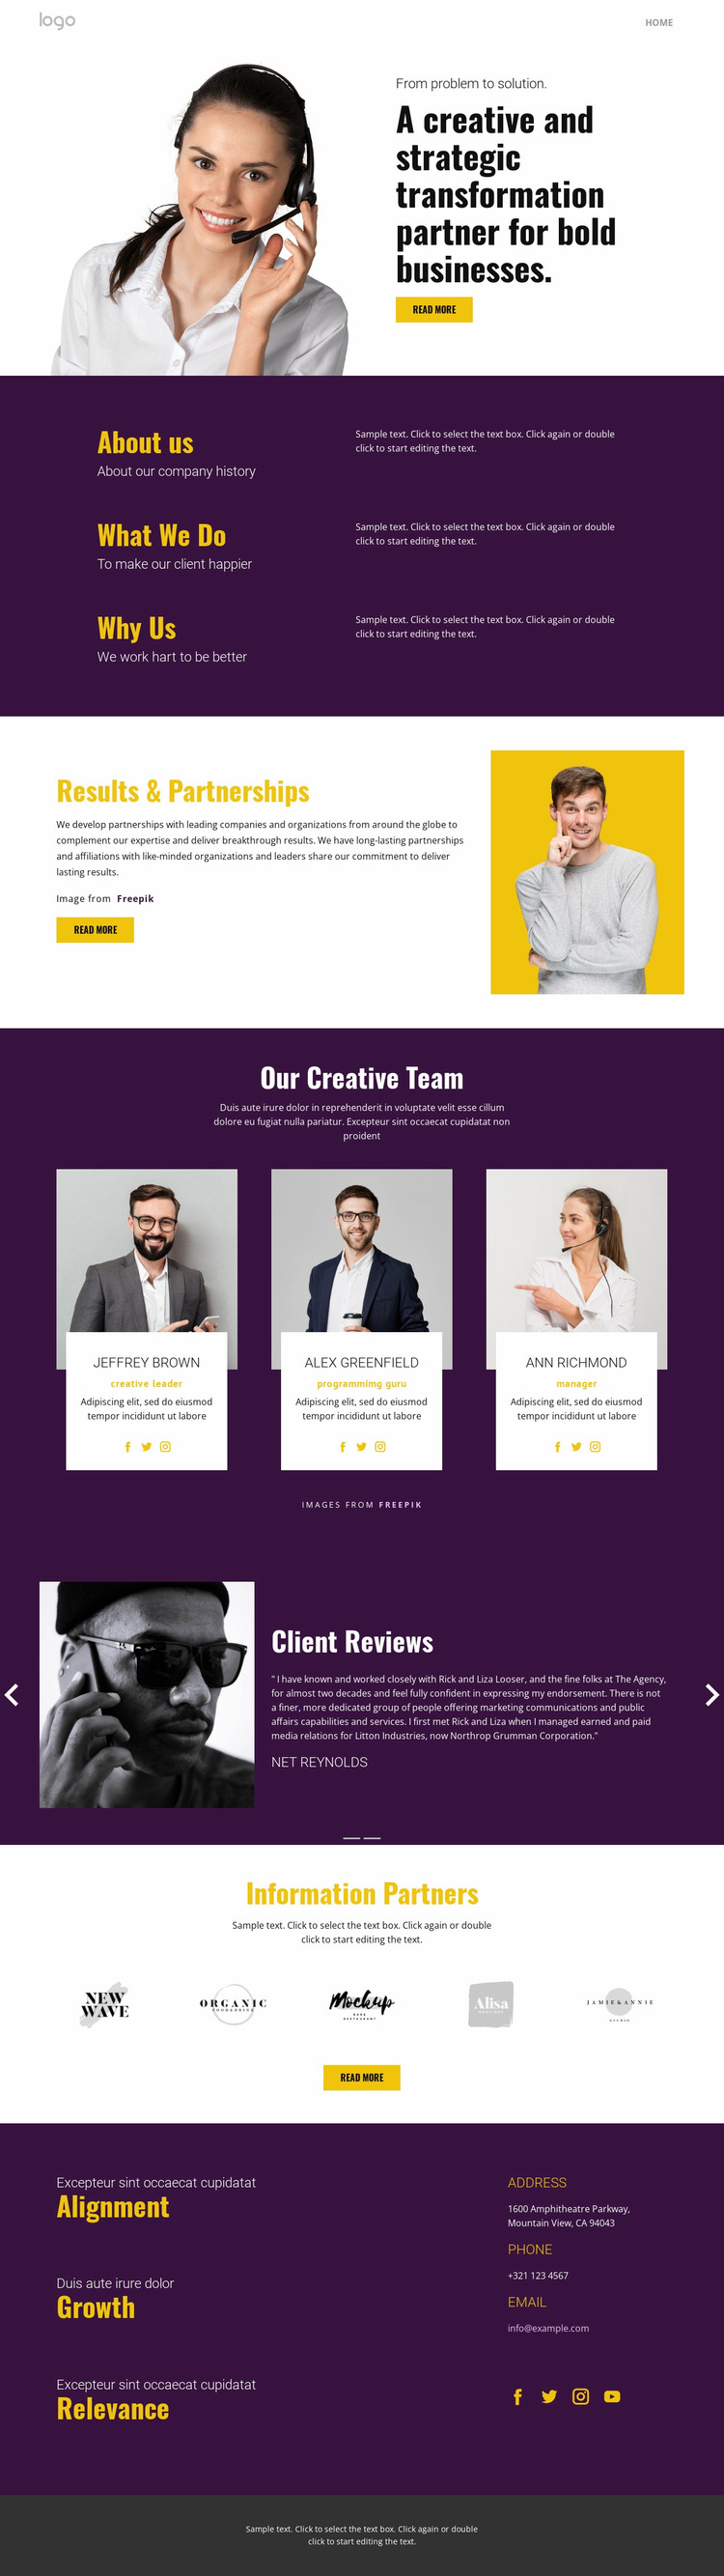 Creative strategy in business Website Mockup